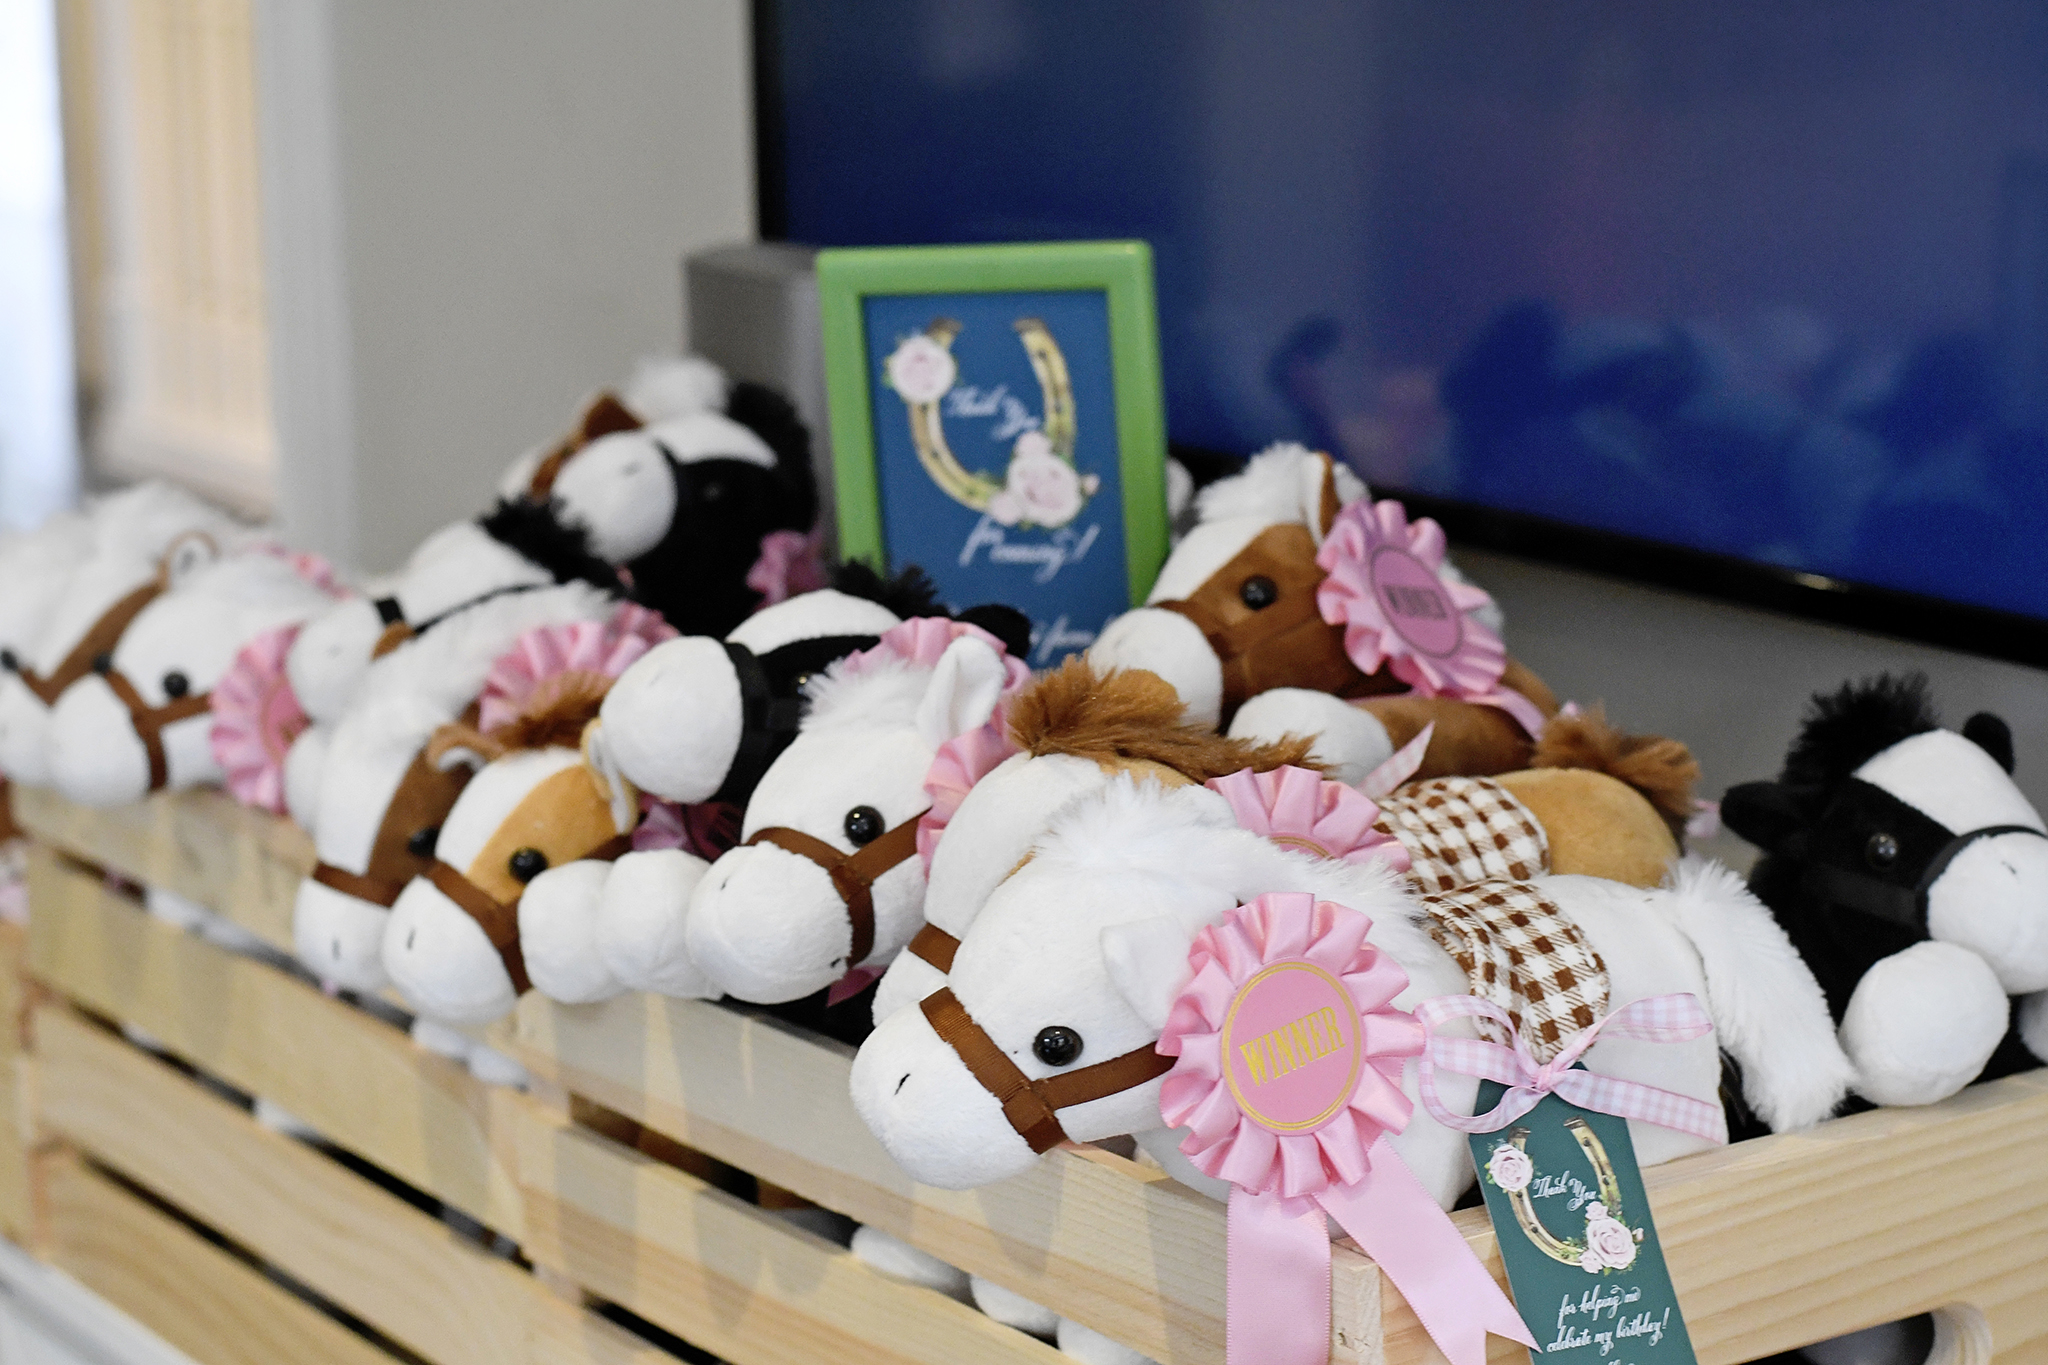 Plush horses served as party favors!